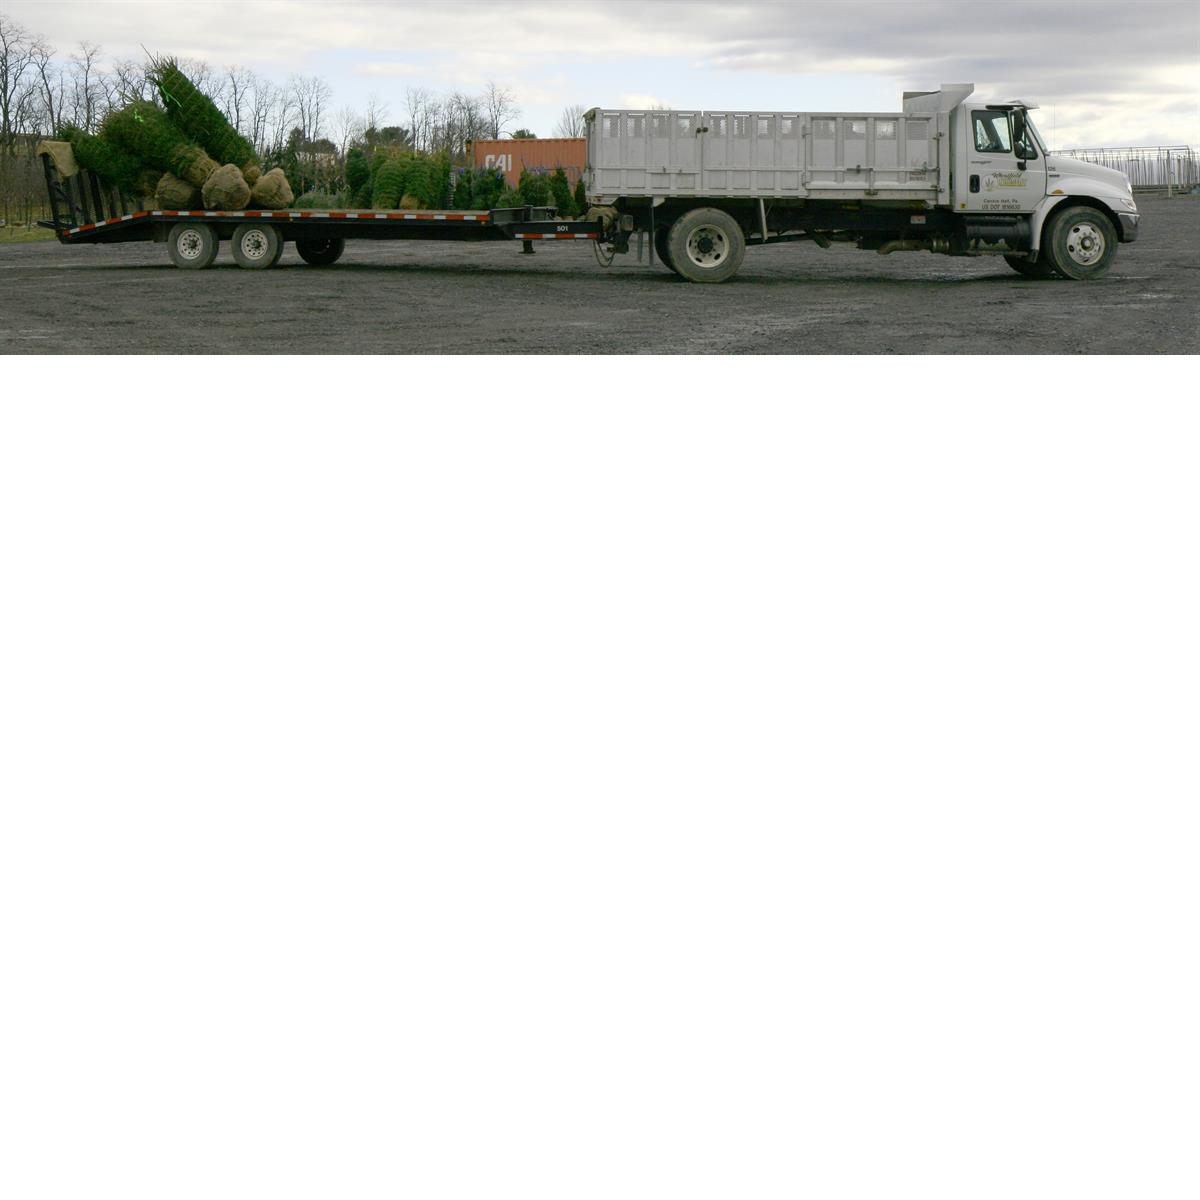 Truck_with_trees